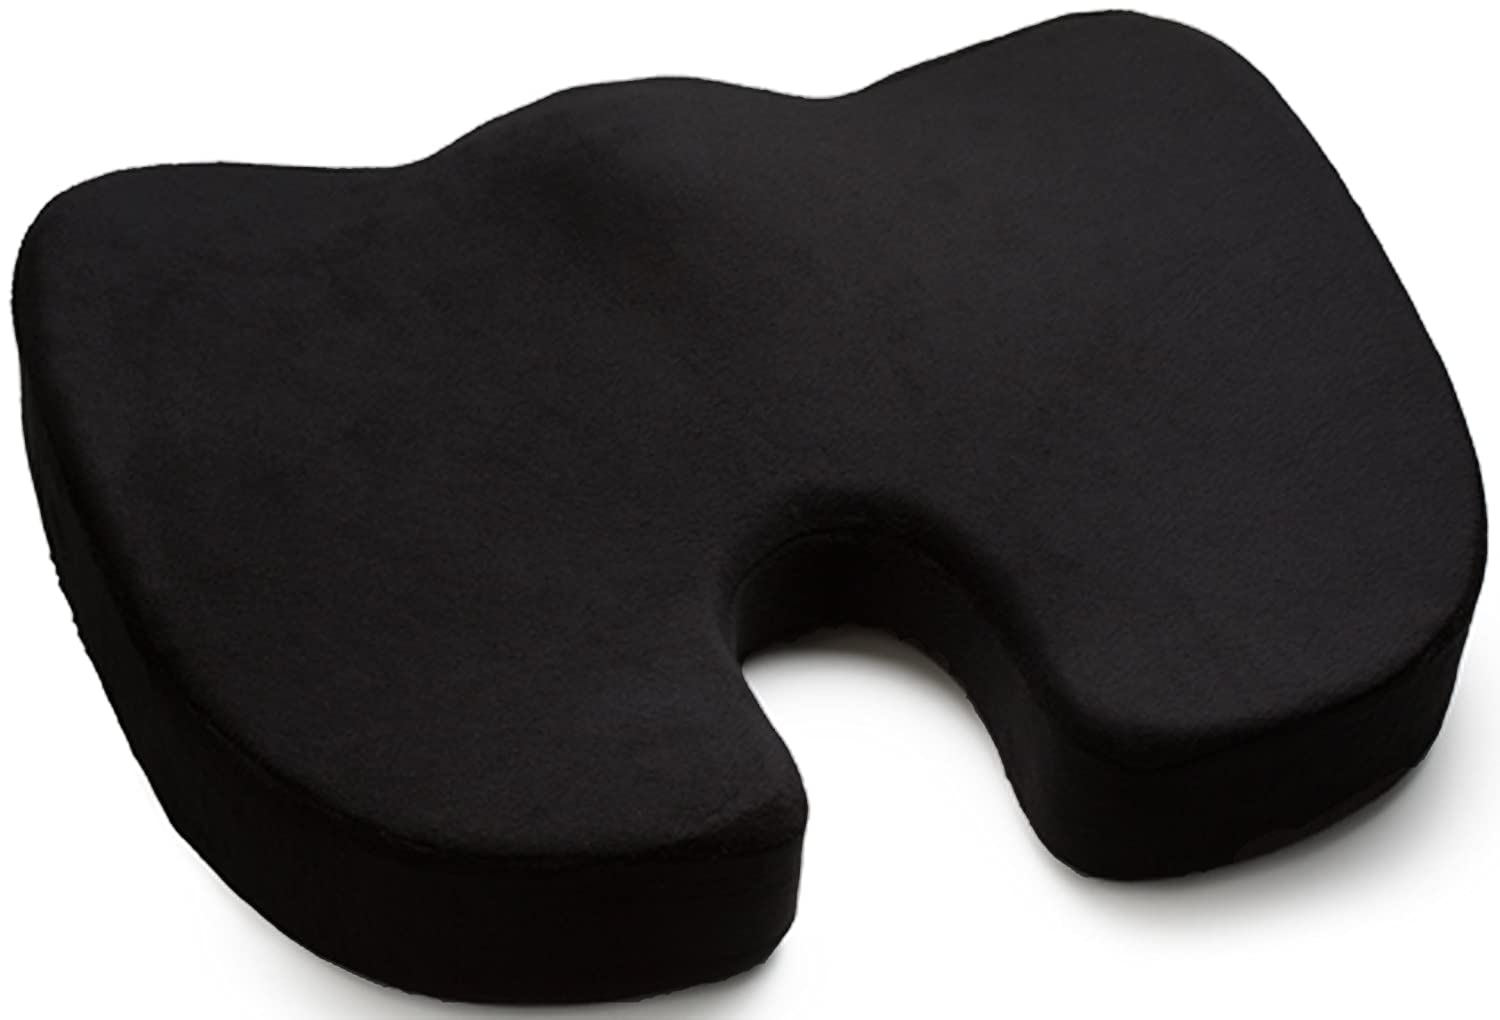 Chair Cushion Memory Foam Memory Foam Chair Cushion